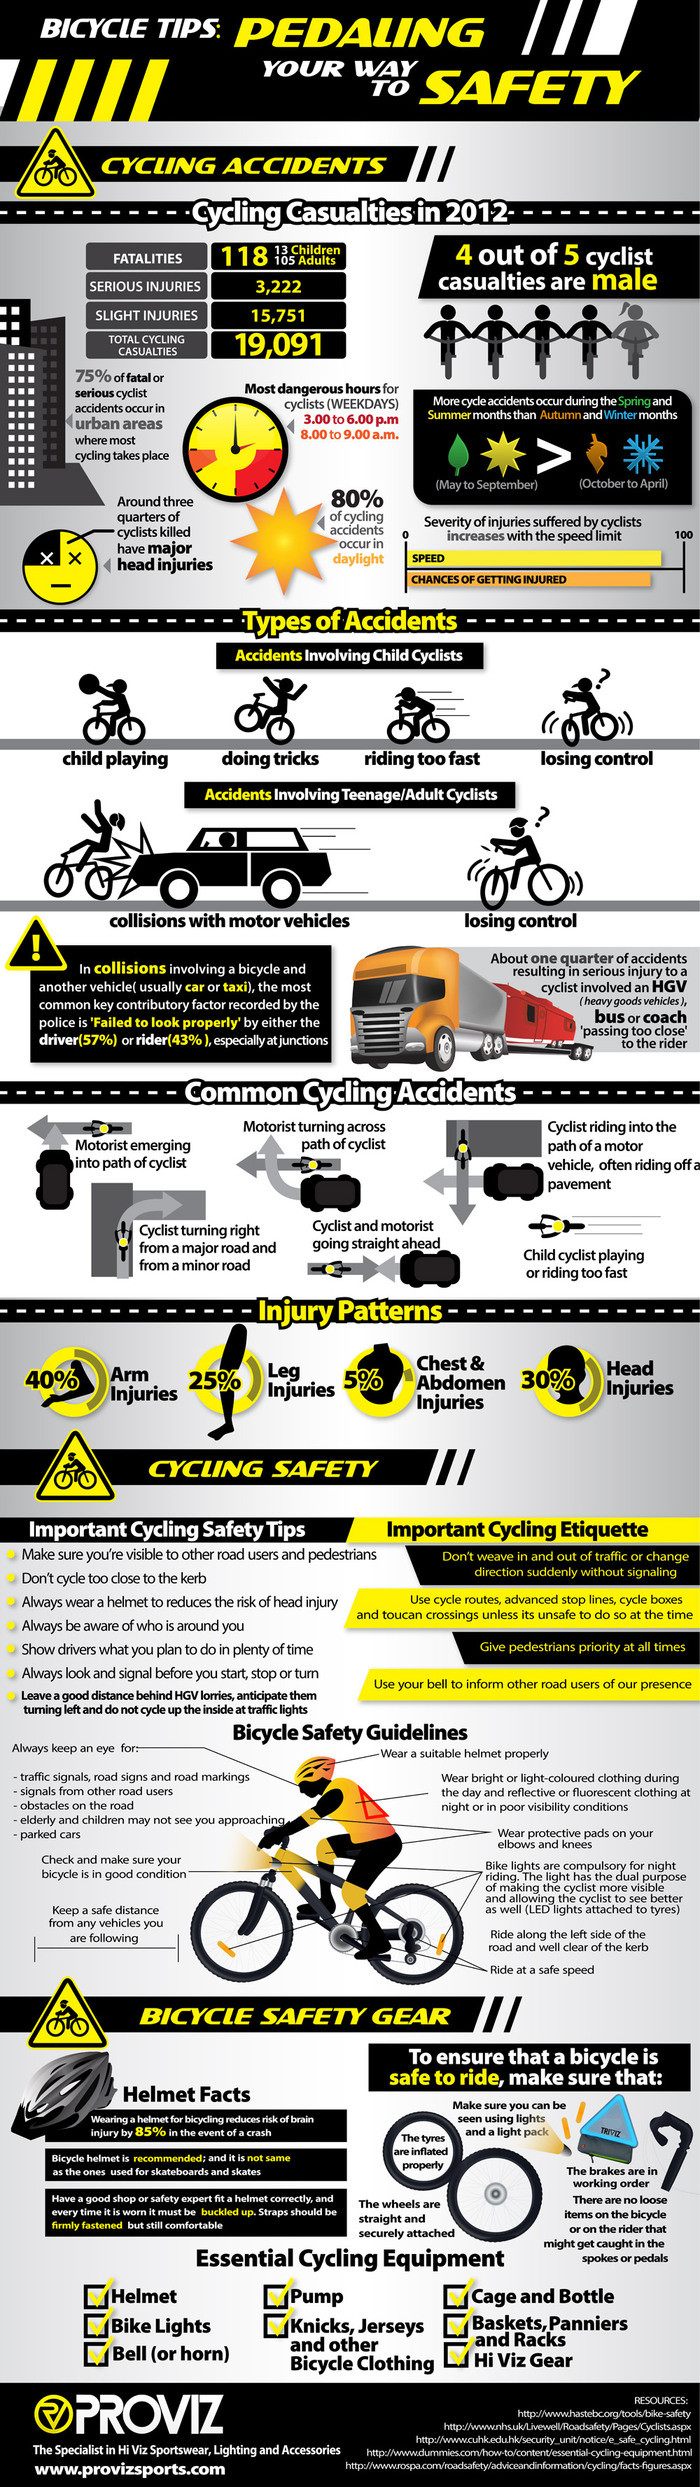 Bicycle Tips: Pedaling Your Way to Safety